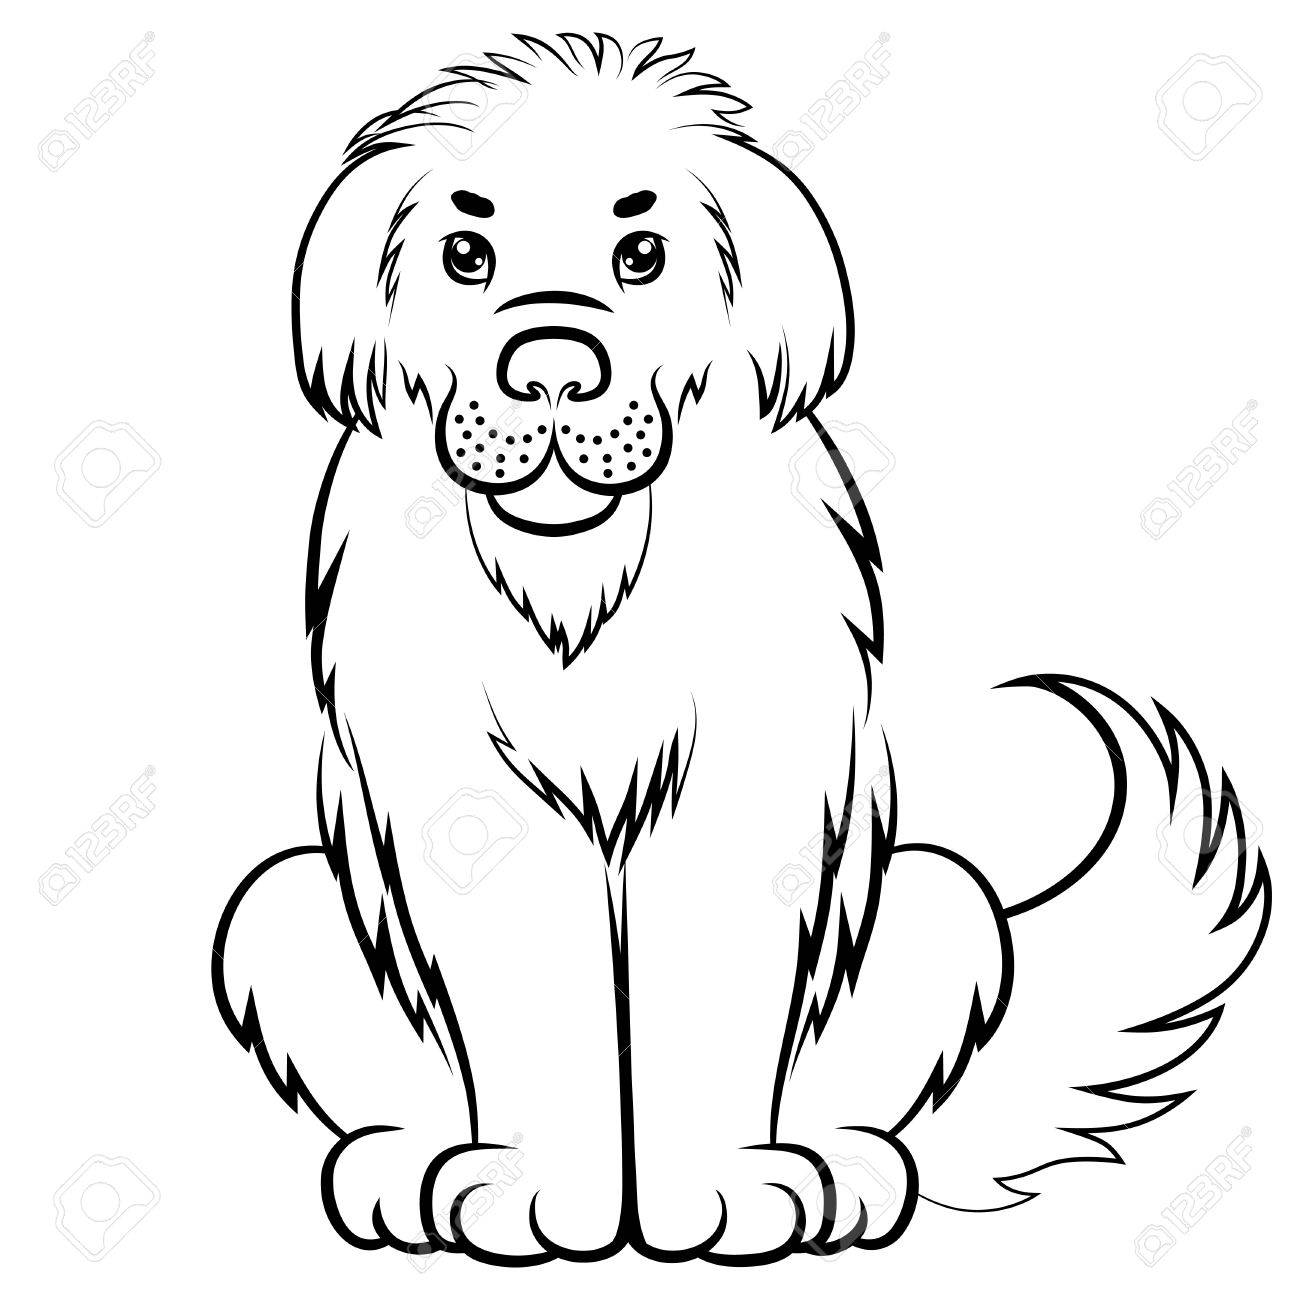 1300x1300 collection of free furry clipart shaggy dog download on ui ex